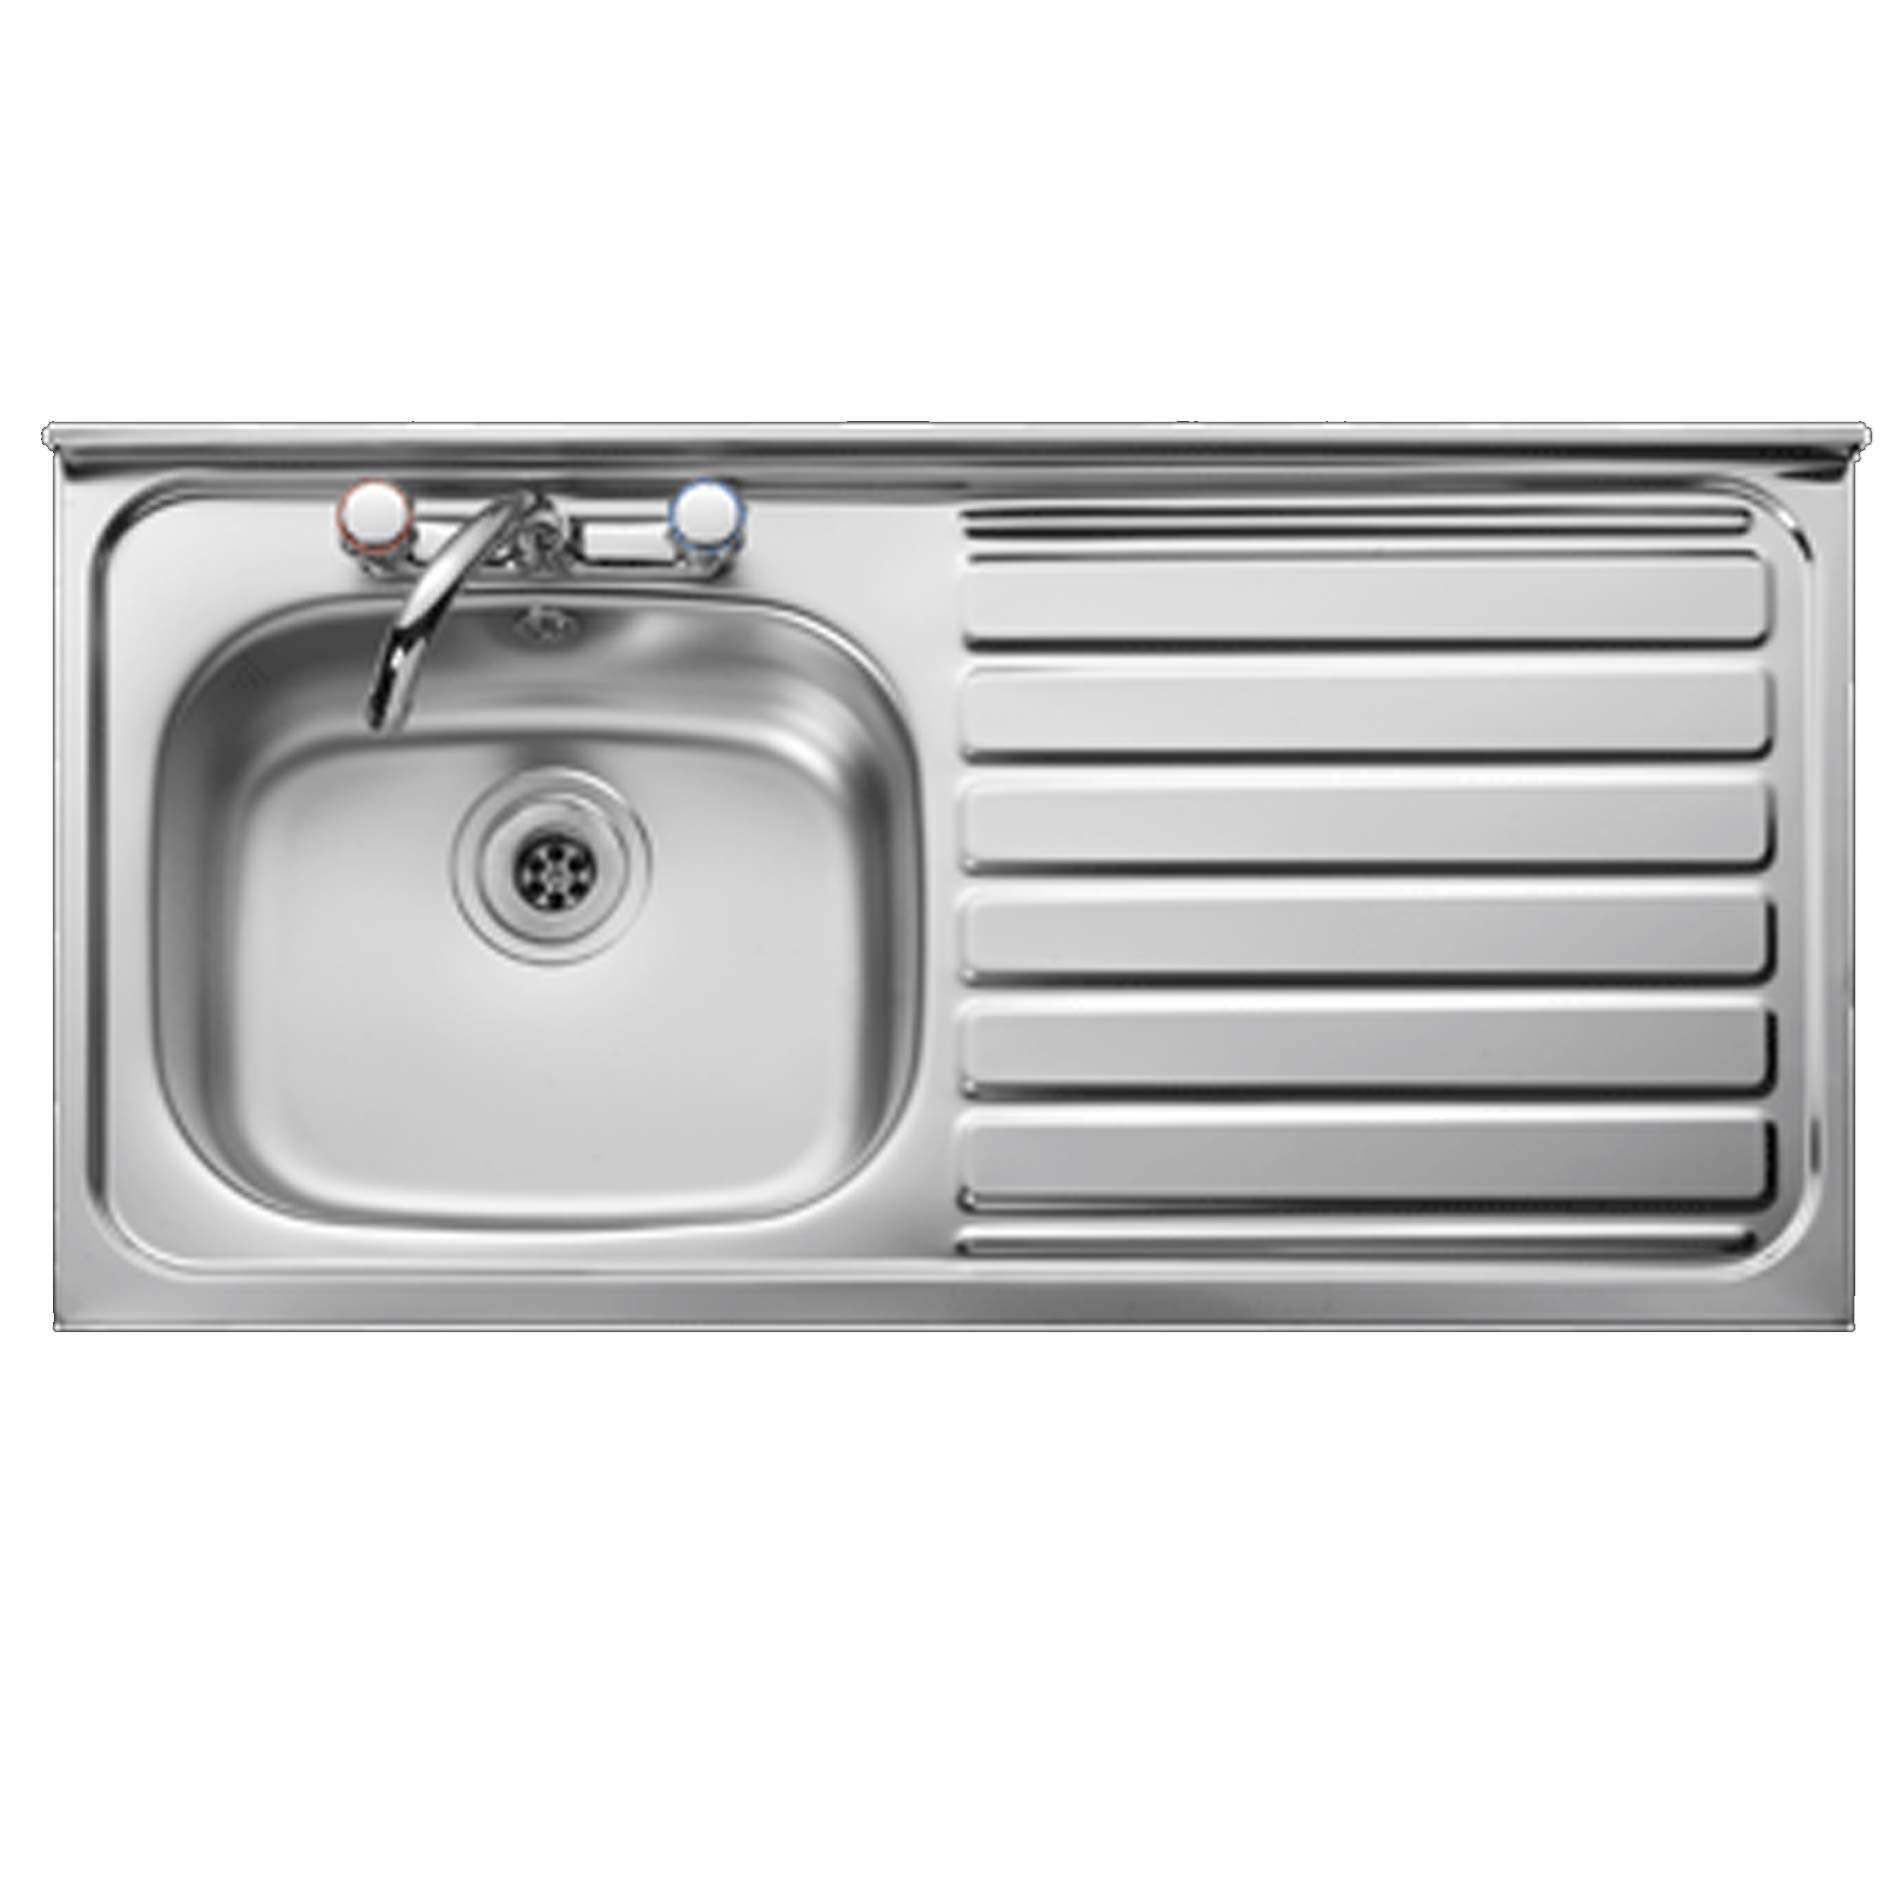 Picture of Contract LC105 Stainless Steel Sink